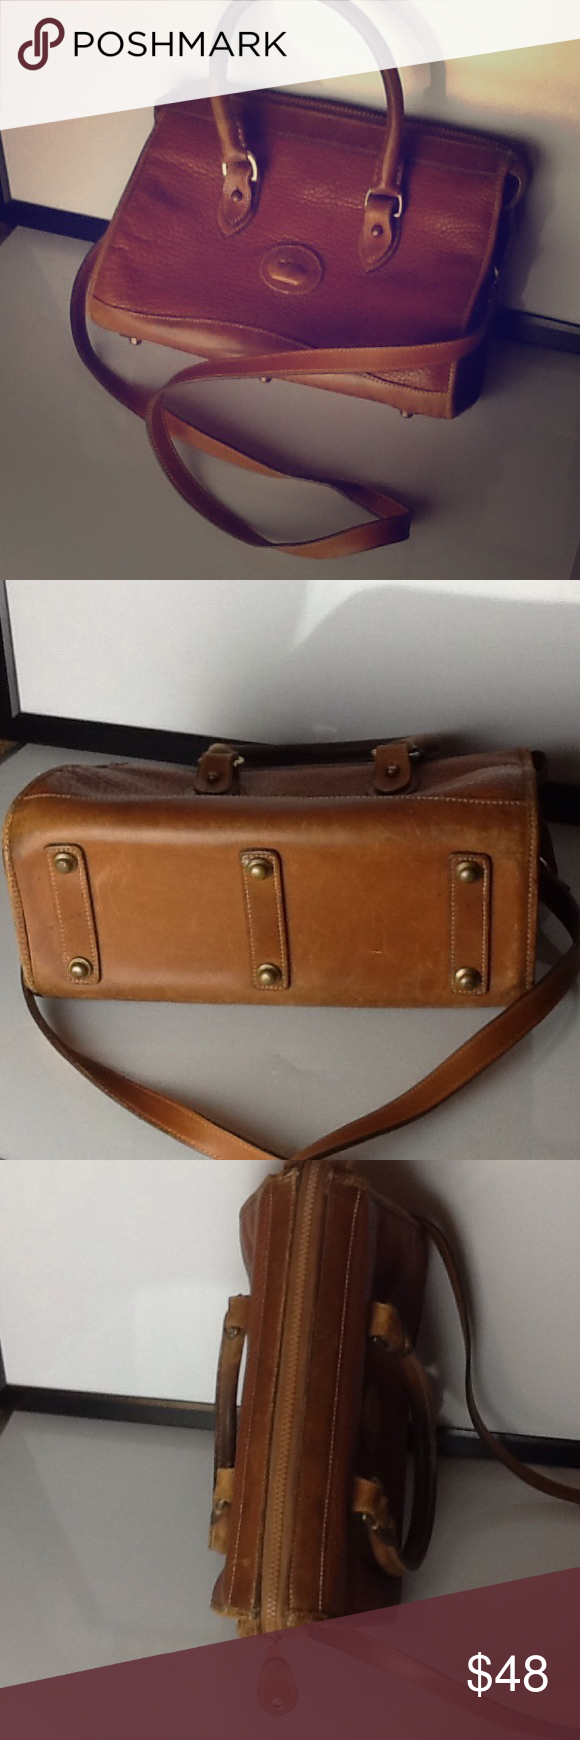 Vintage British Tan Dooney & Bourke bag All is fair in love and wear. This little beauty has signs of wear and the inside has lost a few ink pen battles. However, the bag is solid and only you and maybe someone invading your personal space will really notice any damage. (Shoulder strap included). Dooney & Bourke Bags